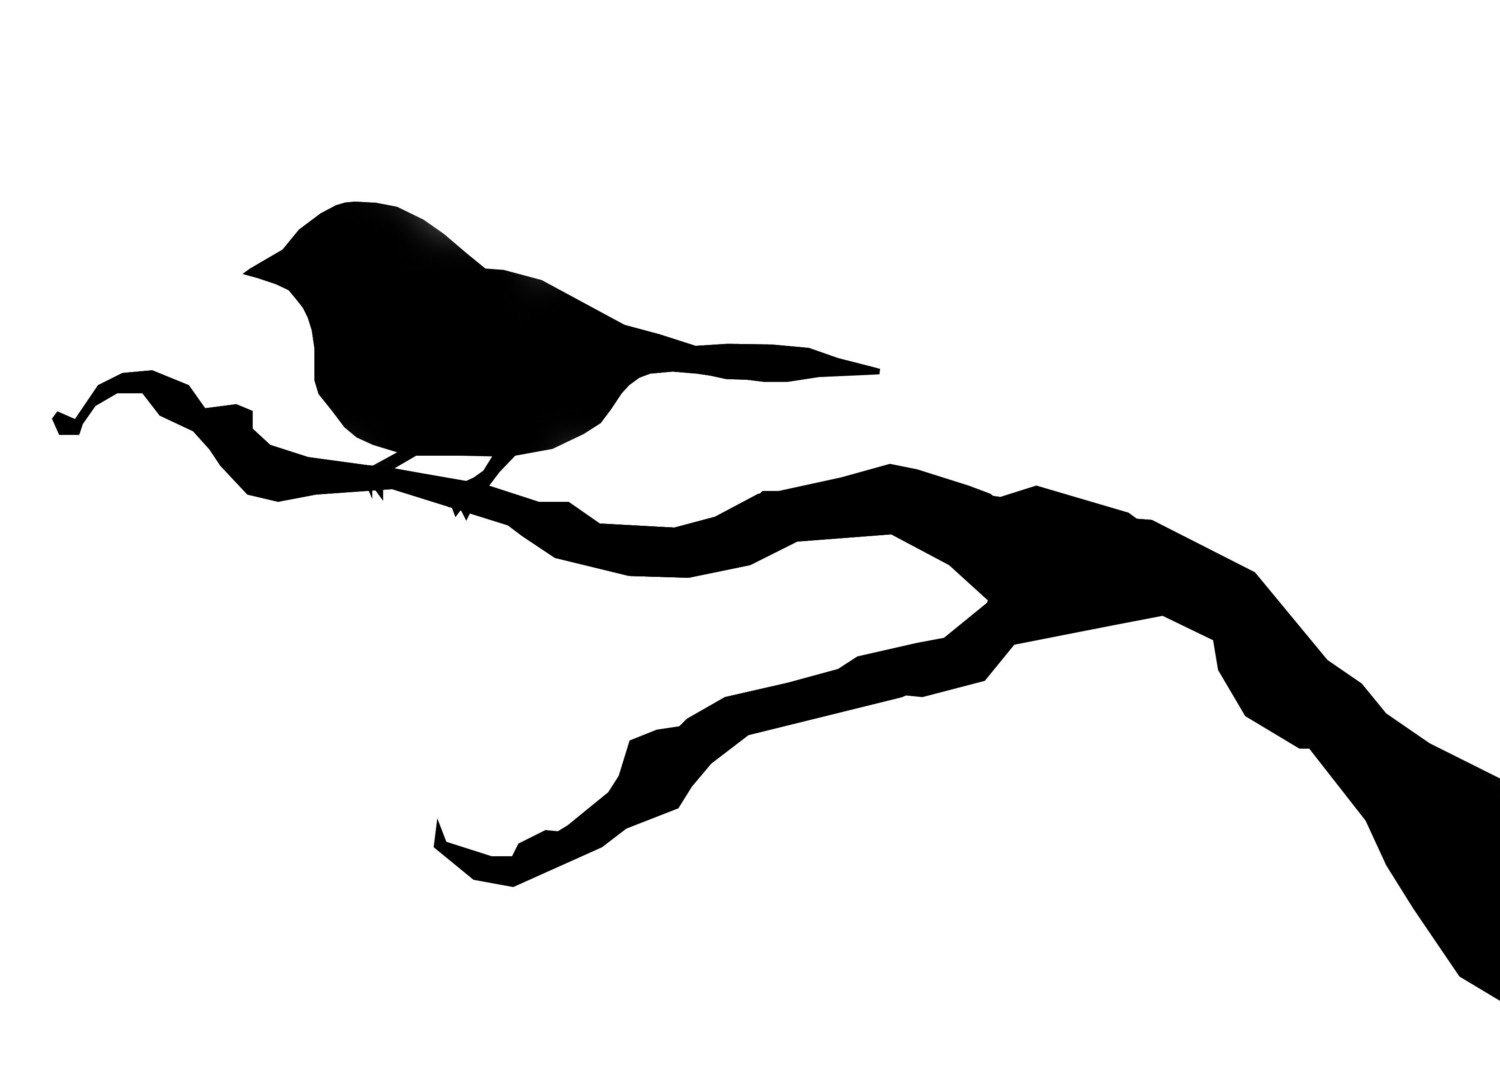 parrot silhouette bird image silhouette parrot silhouette